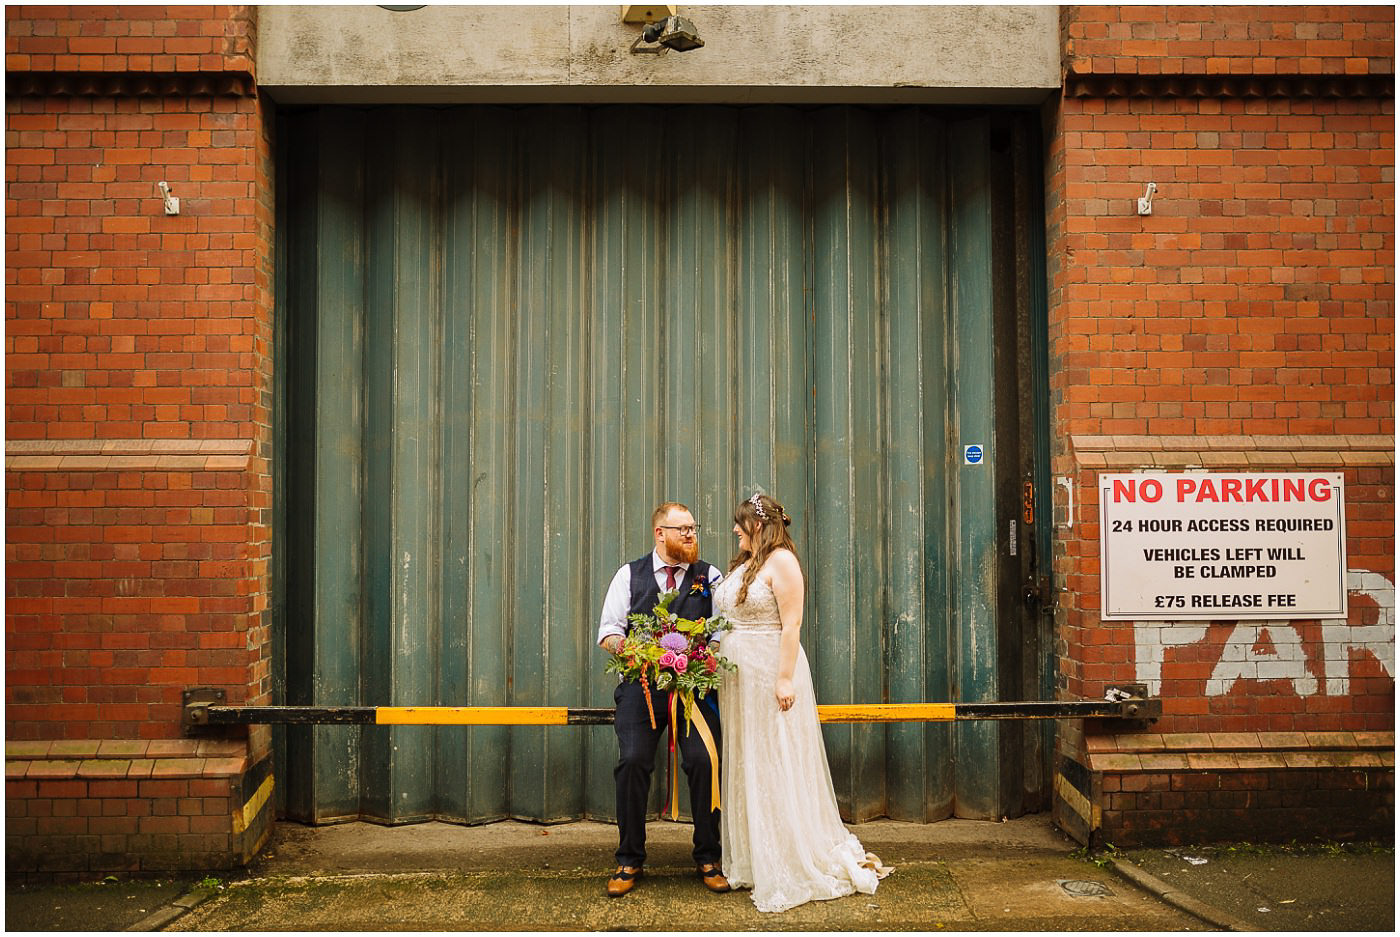 Manchester City Centre Urban Wedding Inspiration